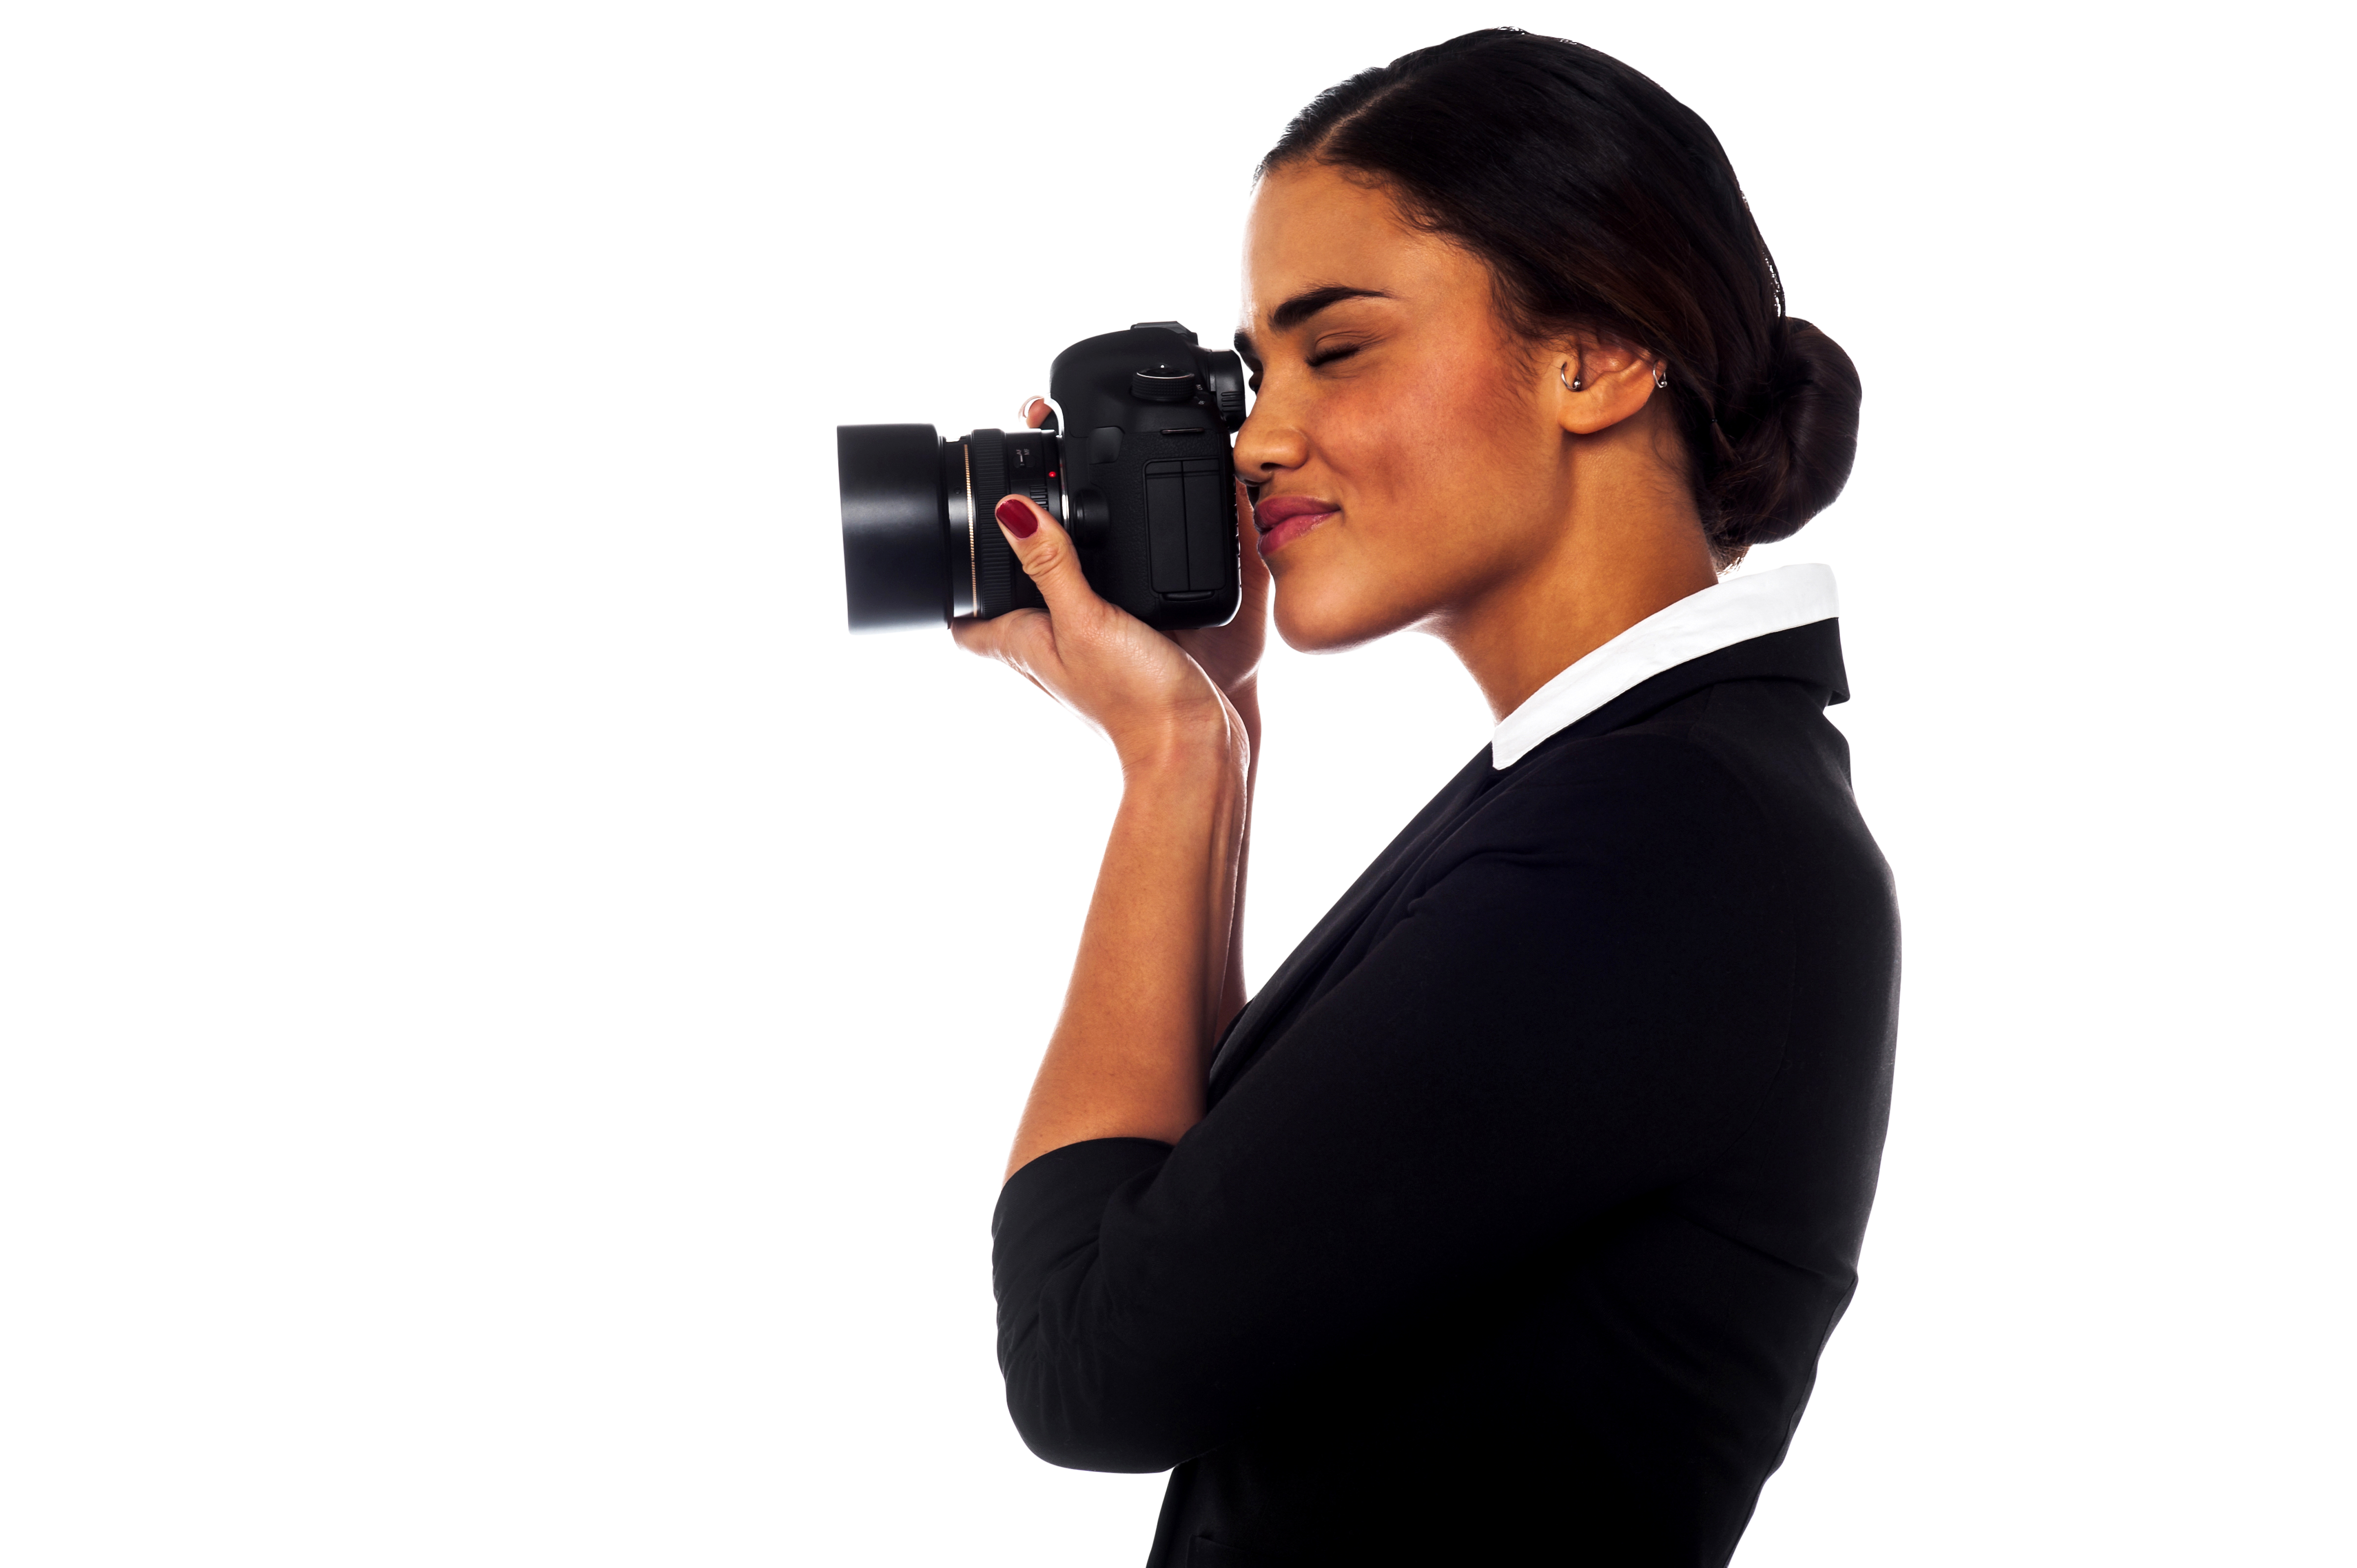 Women In Suit PNG Image